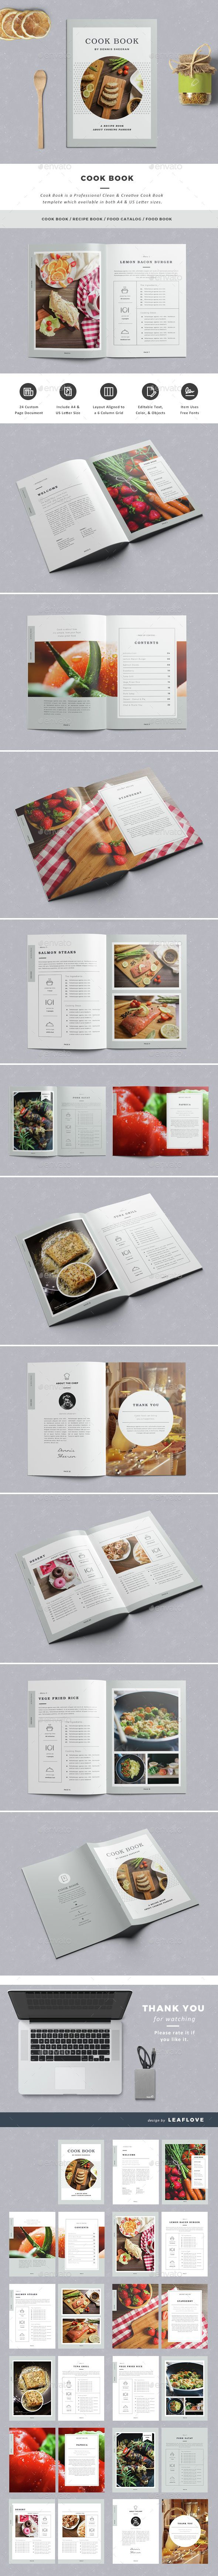 24 Pages Cook Book / Recipe Book Template InDesign INDD. Download ...